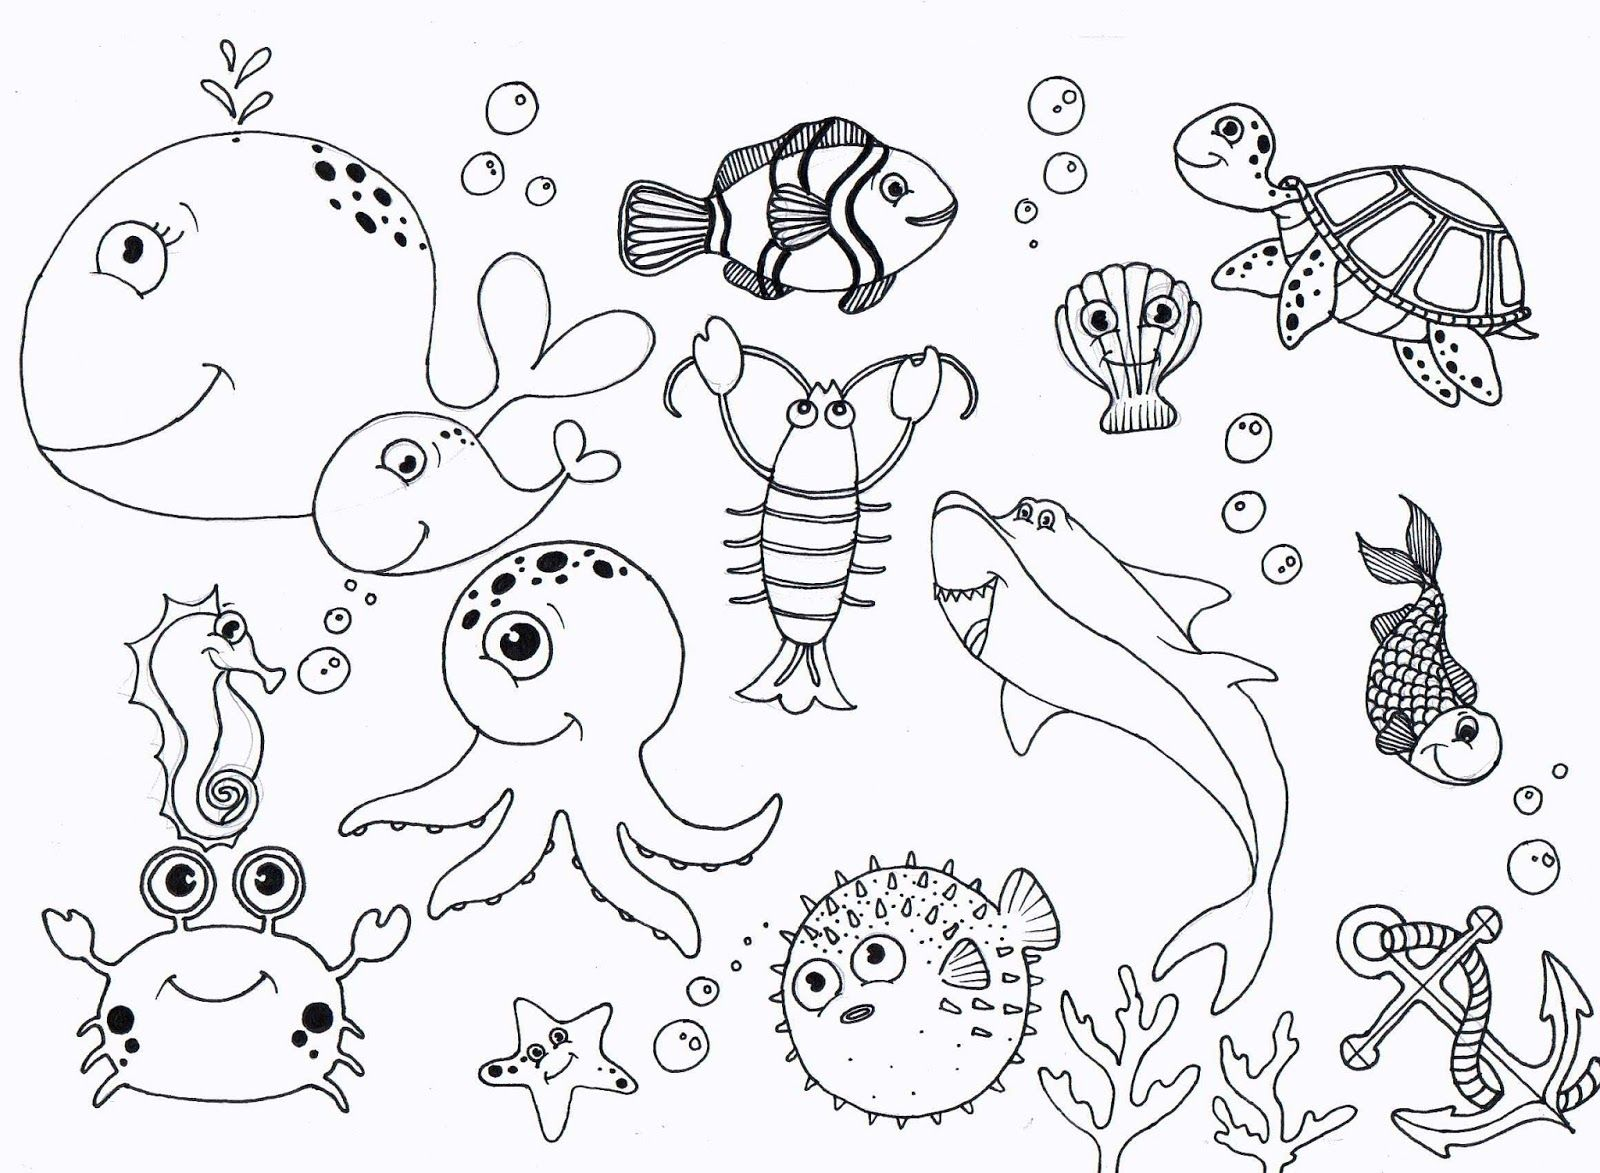 Free Printable Ocean Coloring Pages Coloring Pages Under The Sea Ocean Themed Ocean Coloring Pages Animal Coloring Pages Sea Drawing